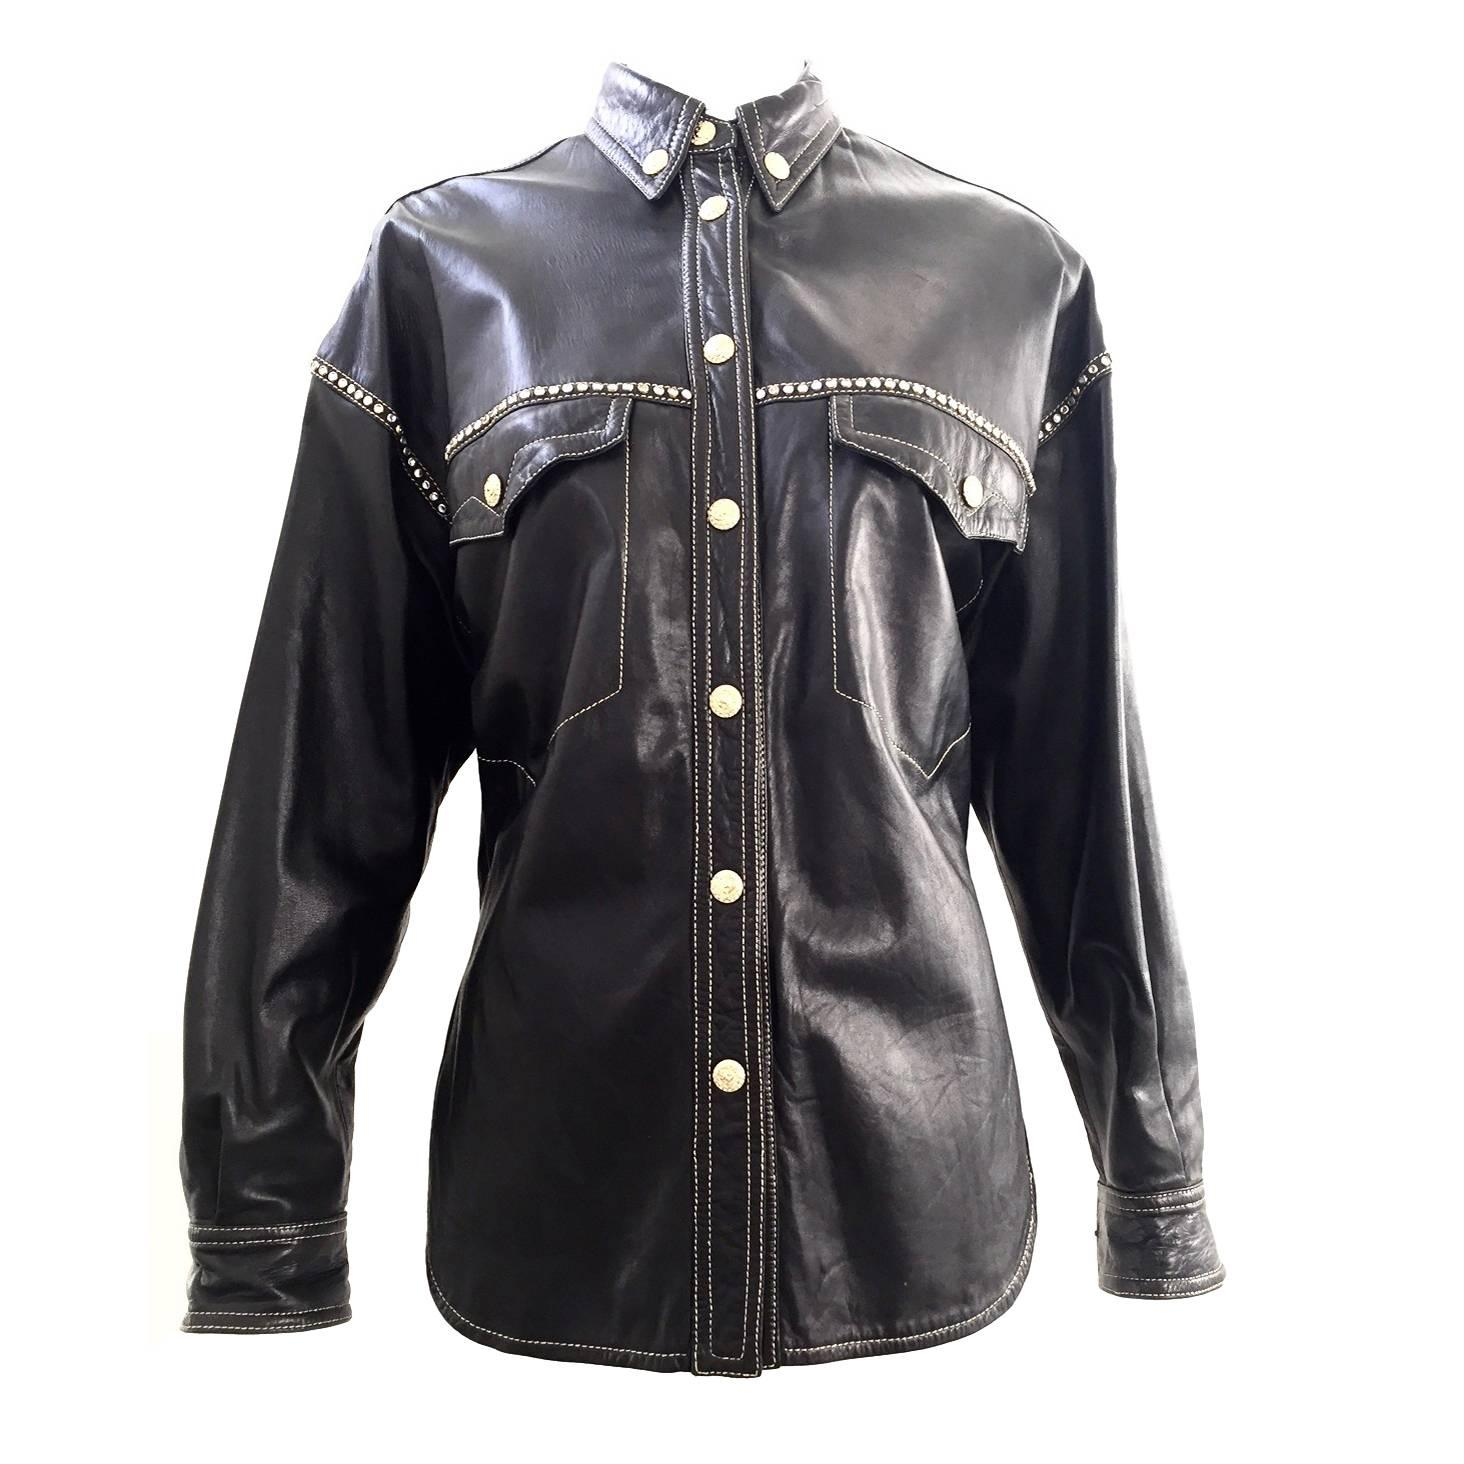 a9334d99 90s Gianni Versace black leather western shirt For Sale at 1stdibs